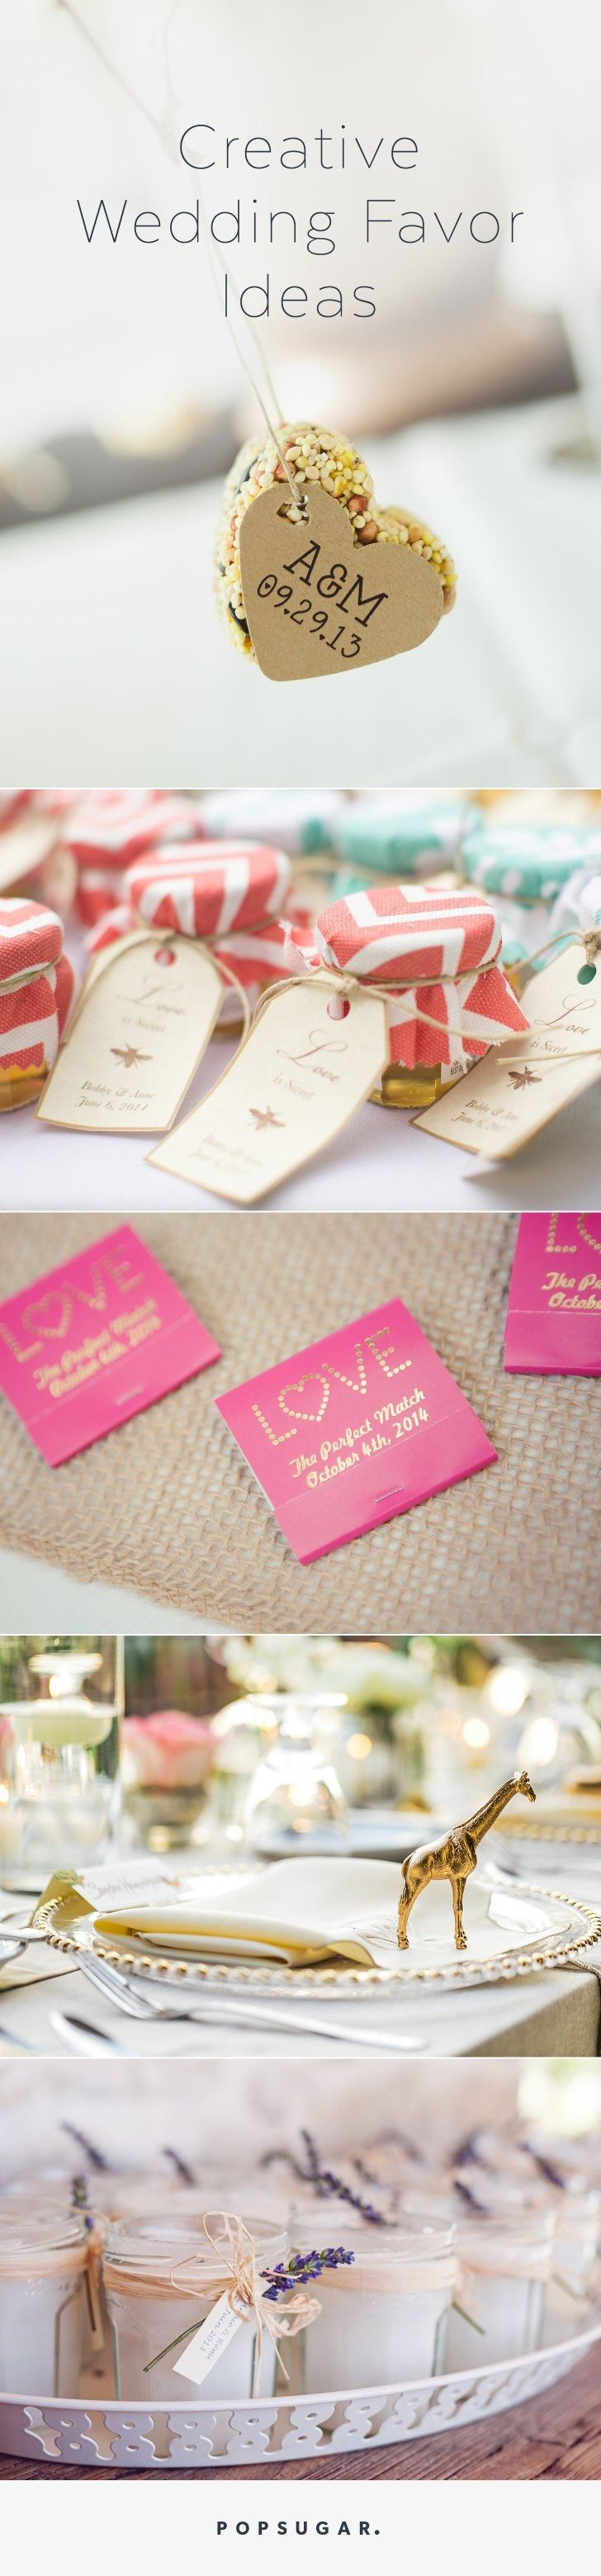 Cheap Favors for Weddings | Giftwedding.co